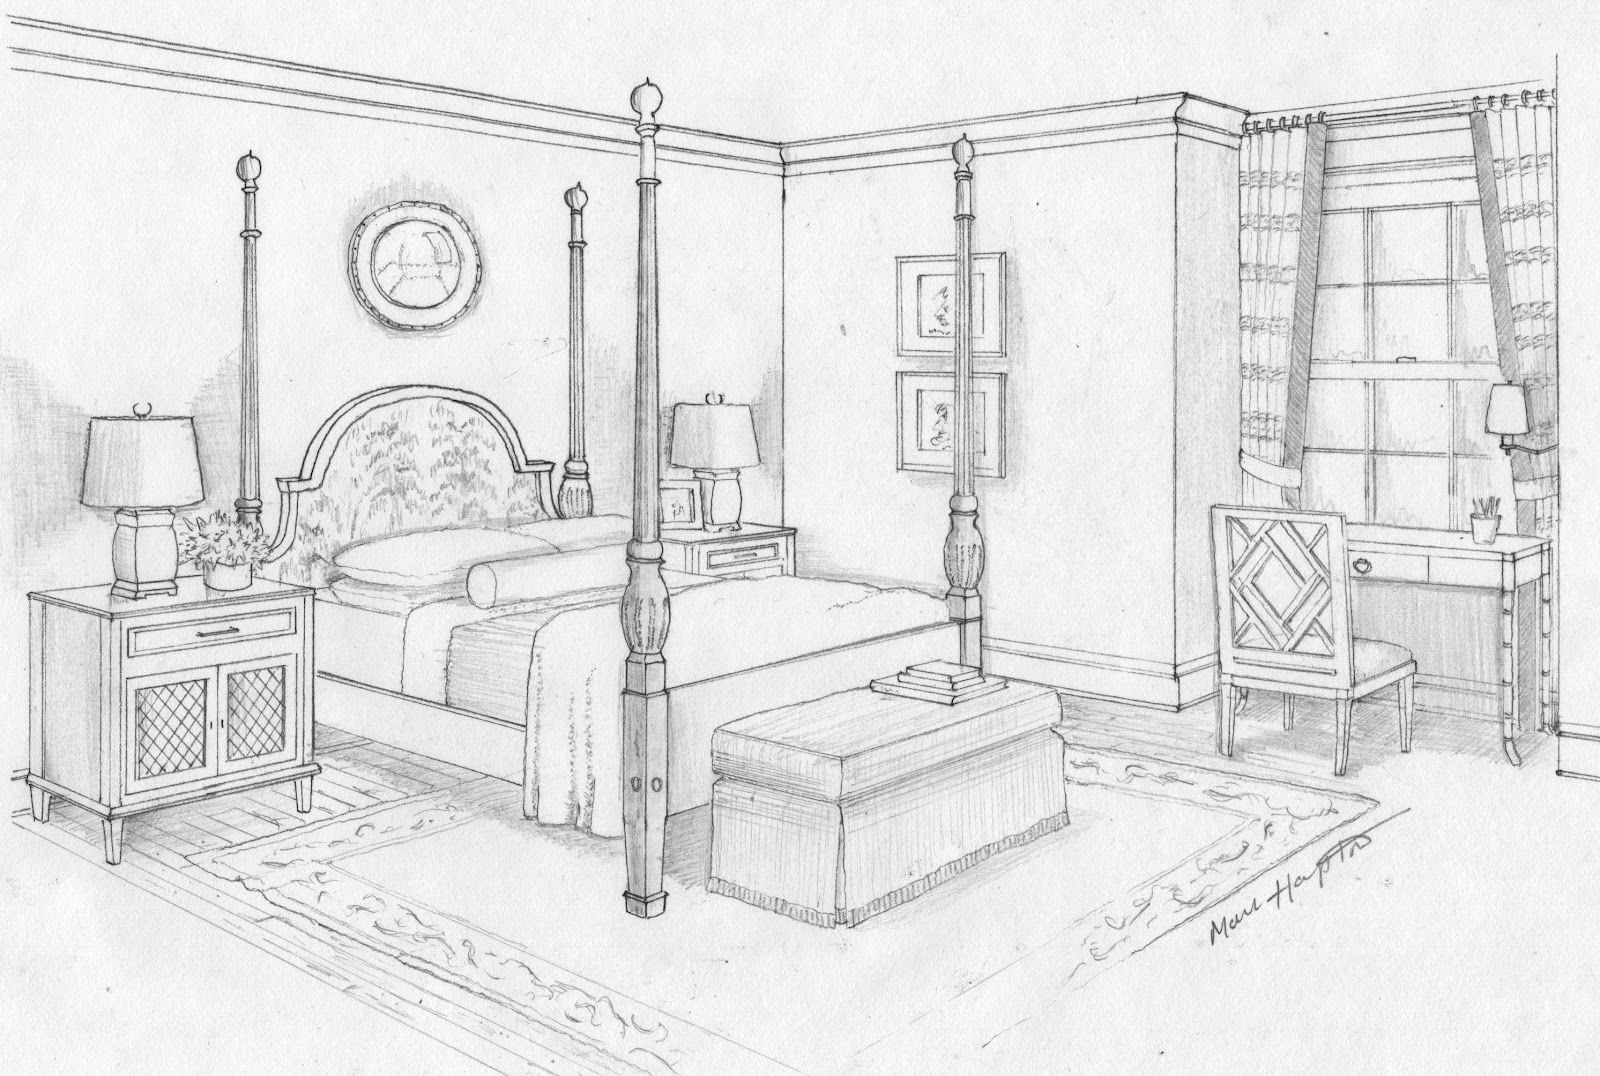 Dream bedroom sketch bedroom ideas pictures art for Sketch plan for 2 bedroom house